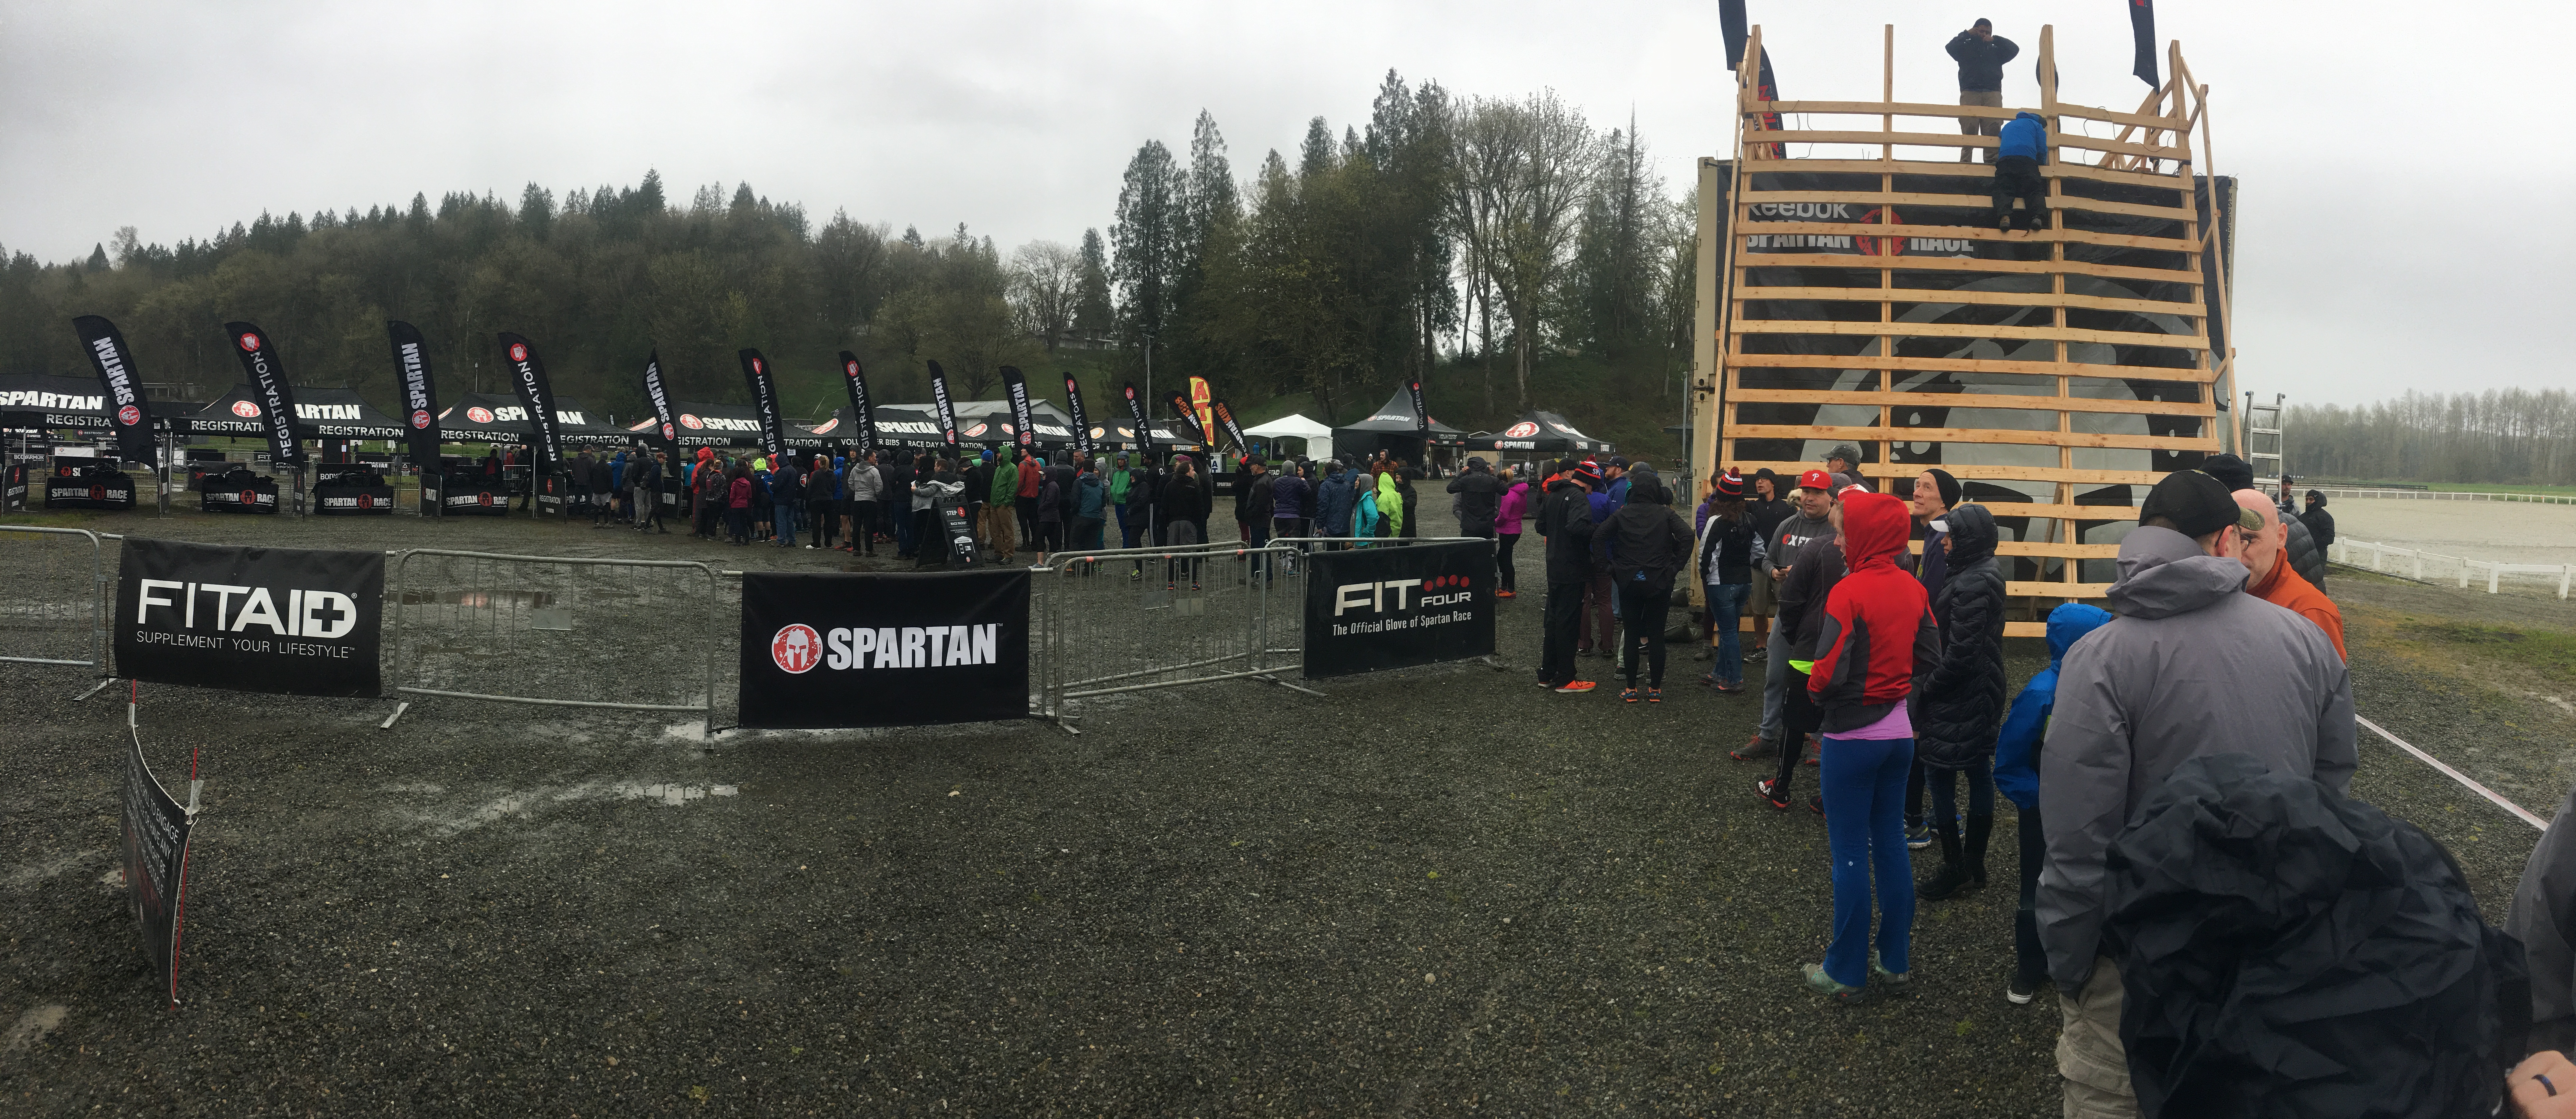 Seattle super 2018 beasts ocr from deep within the beasts ocr territory hundreds of beasts and other participants flooded pun intended into meadow wood equestrian center in beautiful solutioingenieria Choice Image